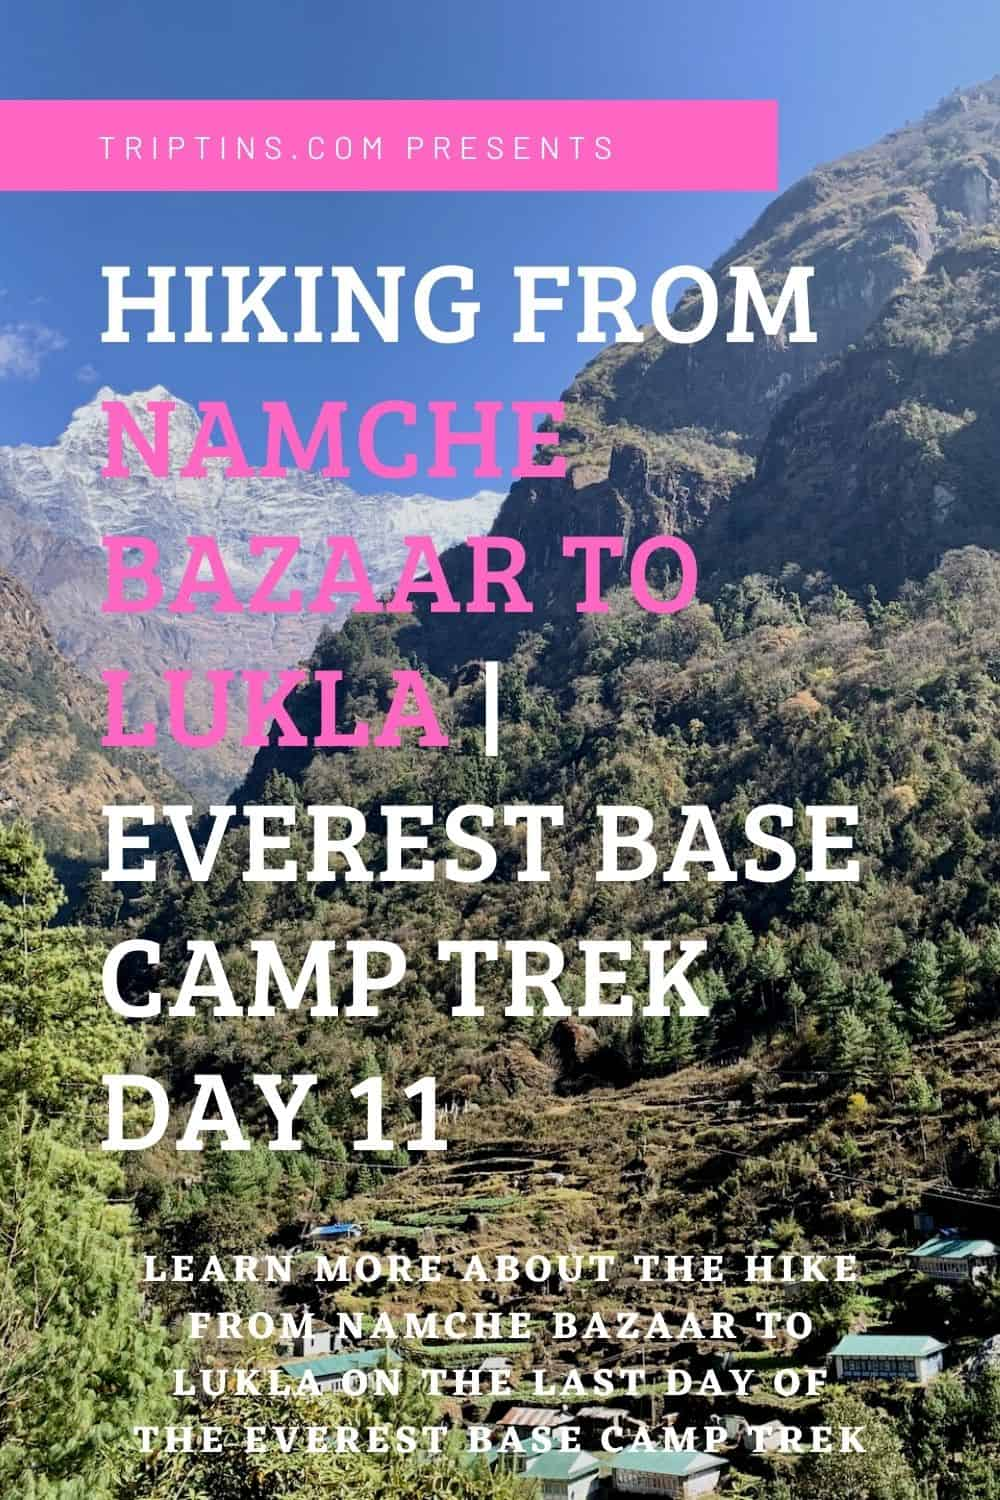 Namche Bazaar to Lukla Everest Day 11